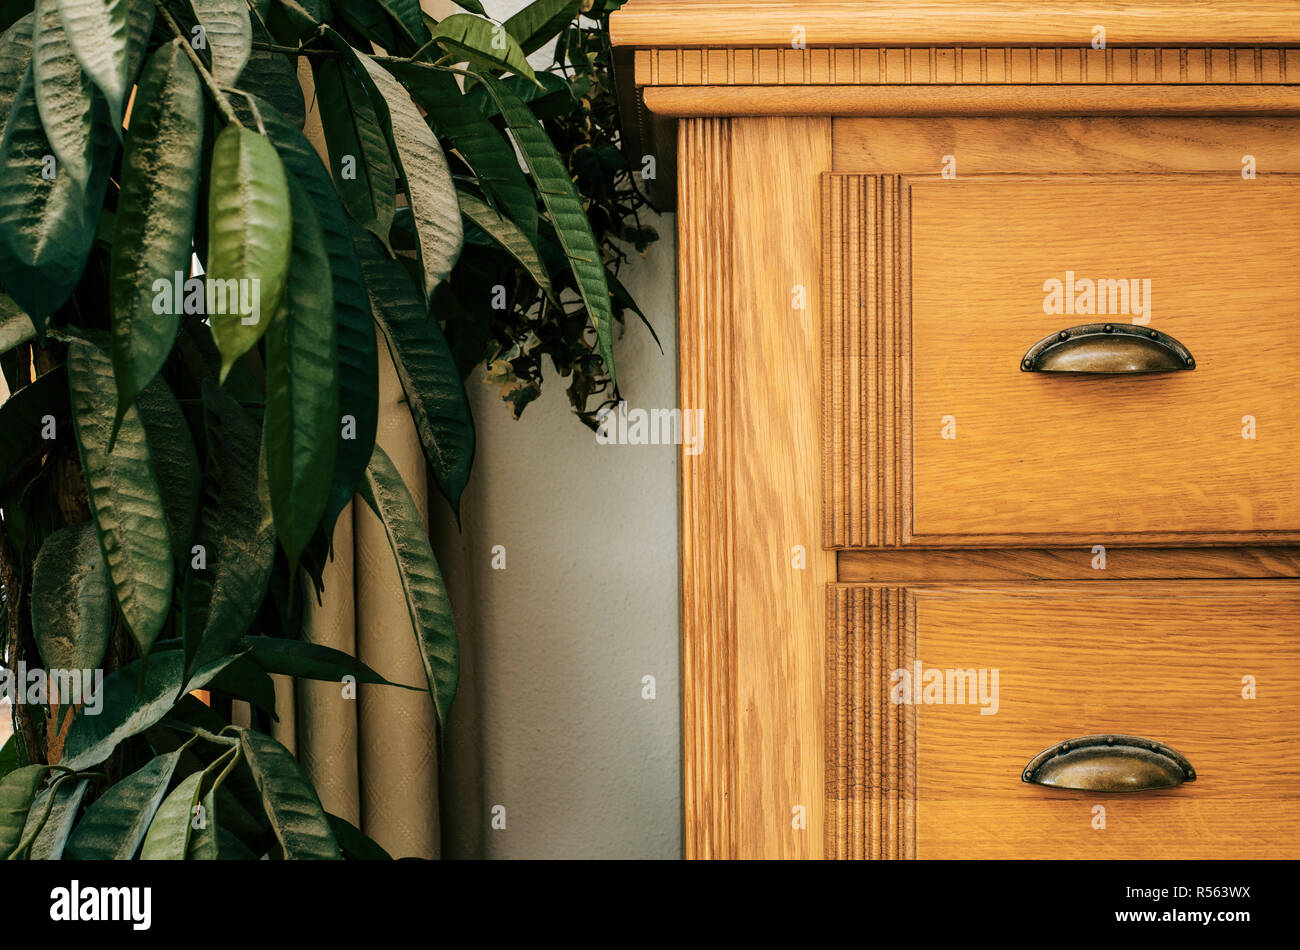 Brown closet with green house plant close-up background texture home interior - Stock Image